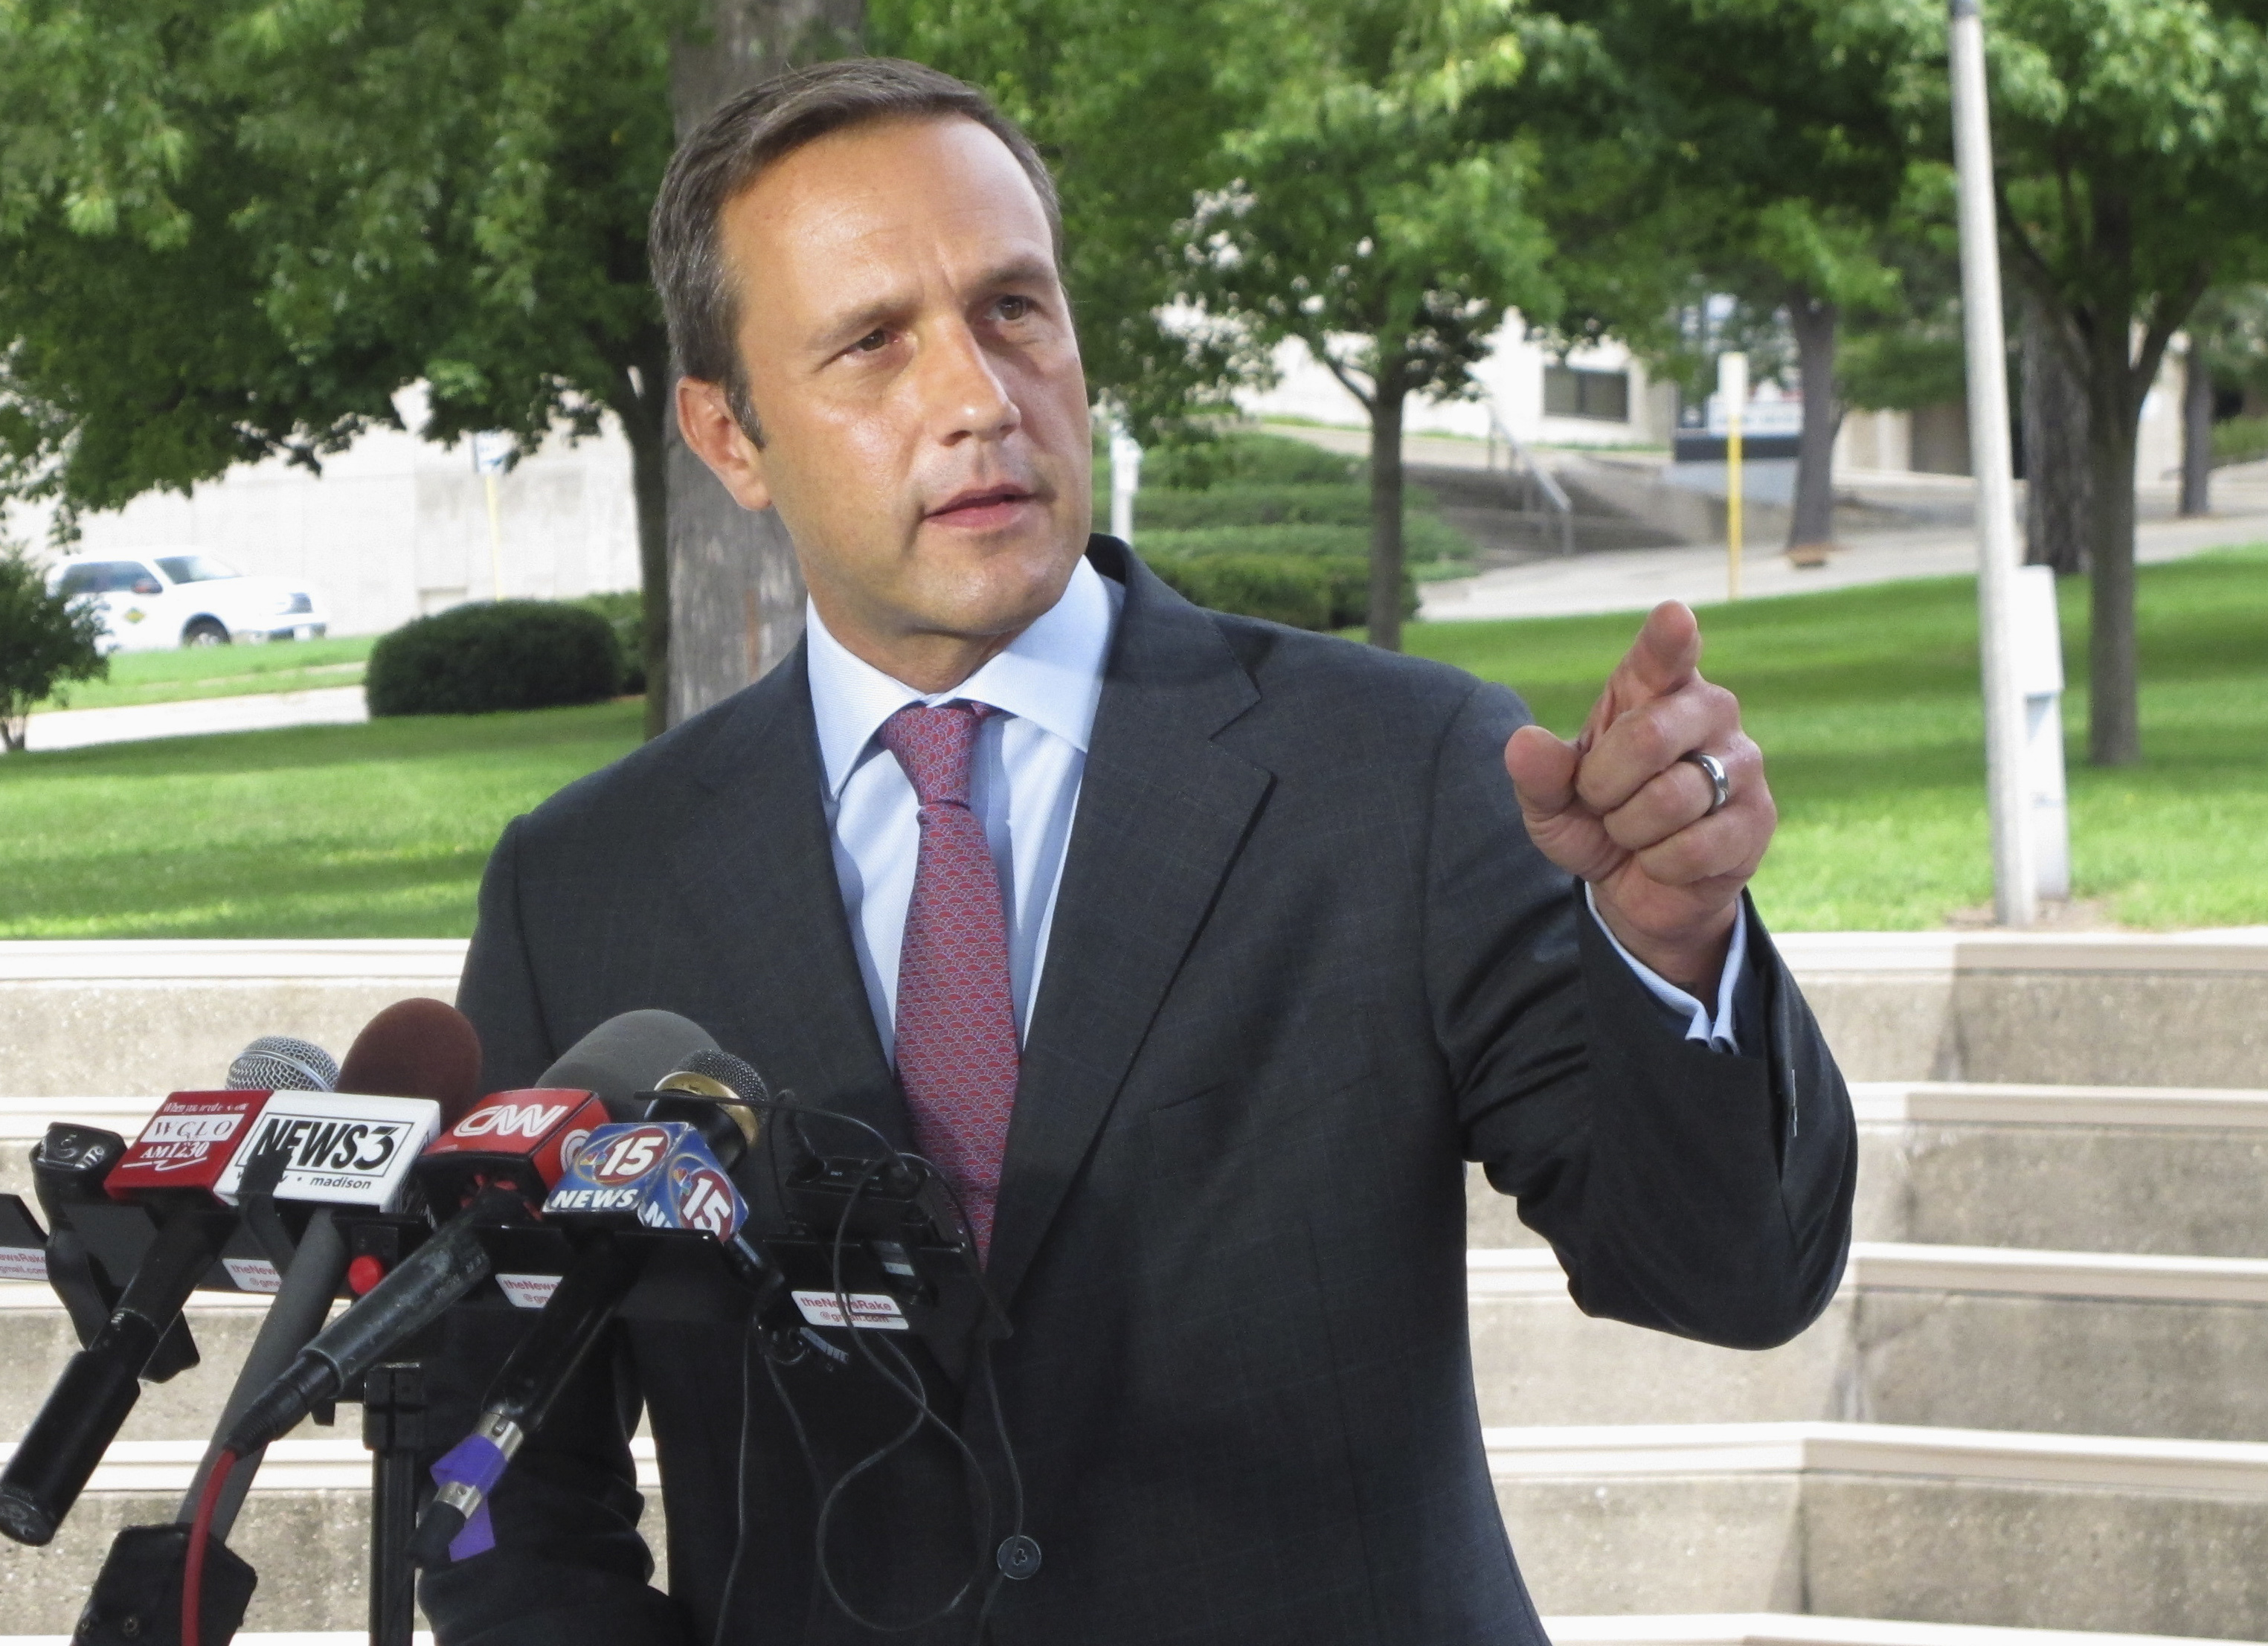 GOP congressional candidate Paul Nehlen banned from Twitter for racist image